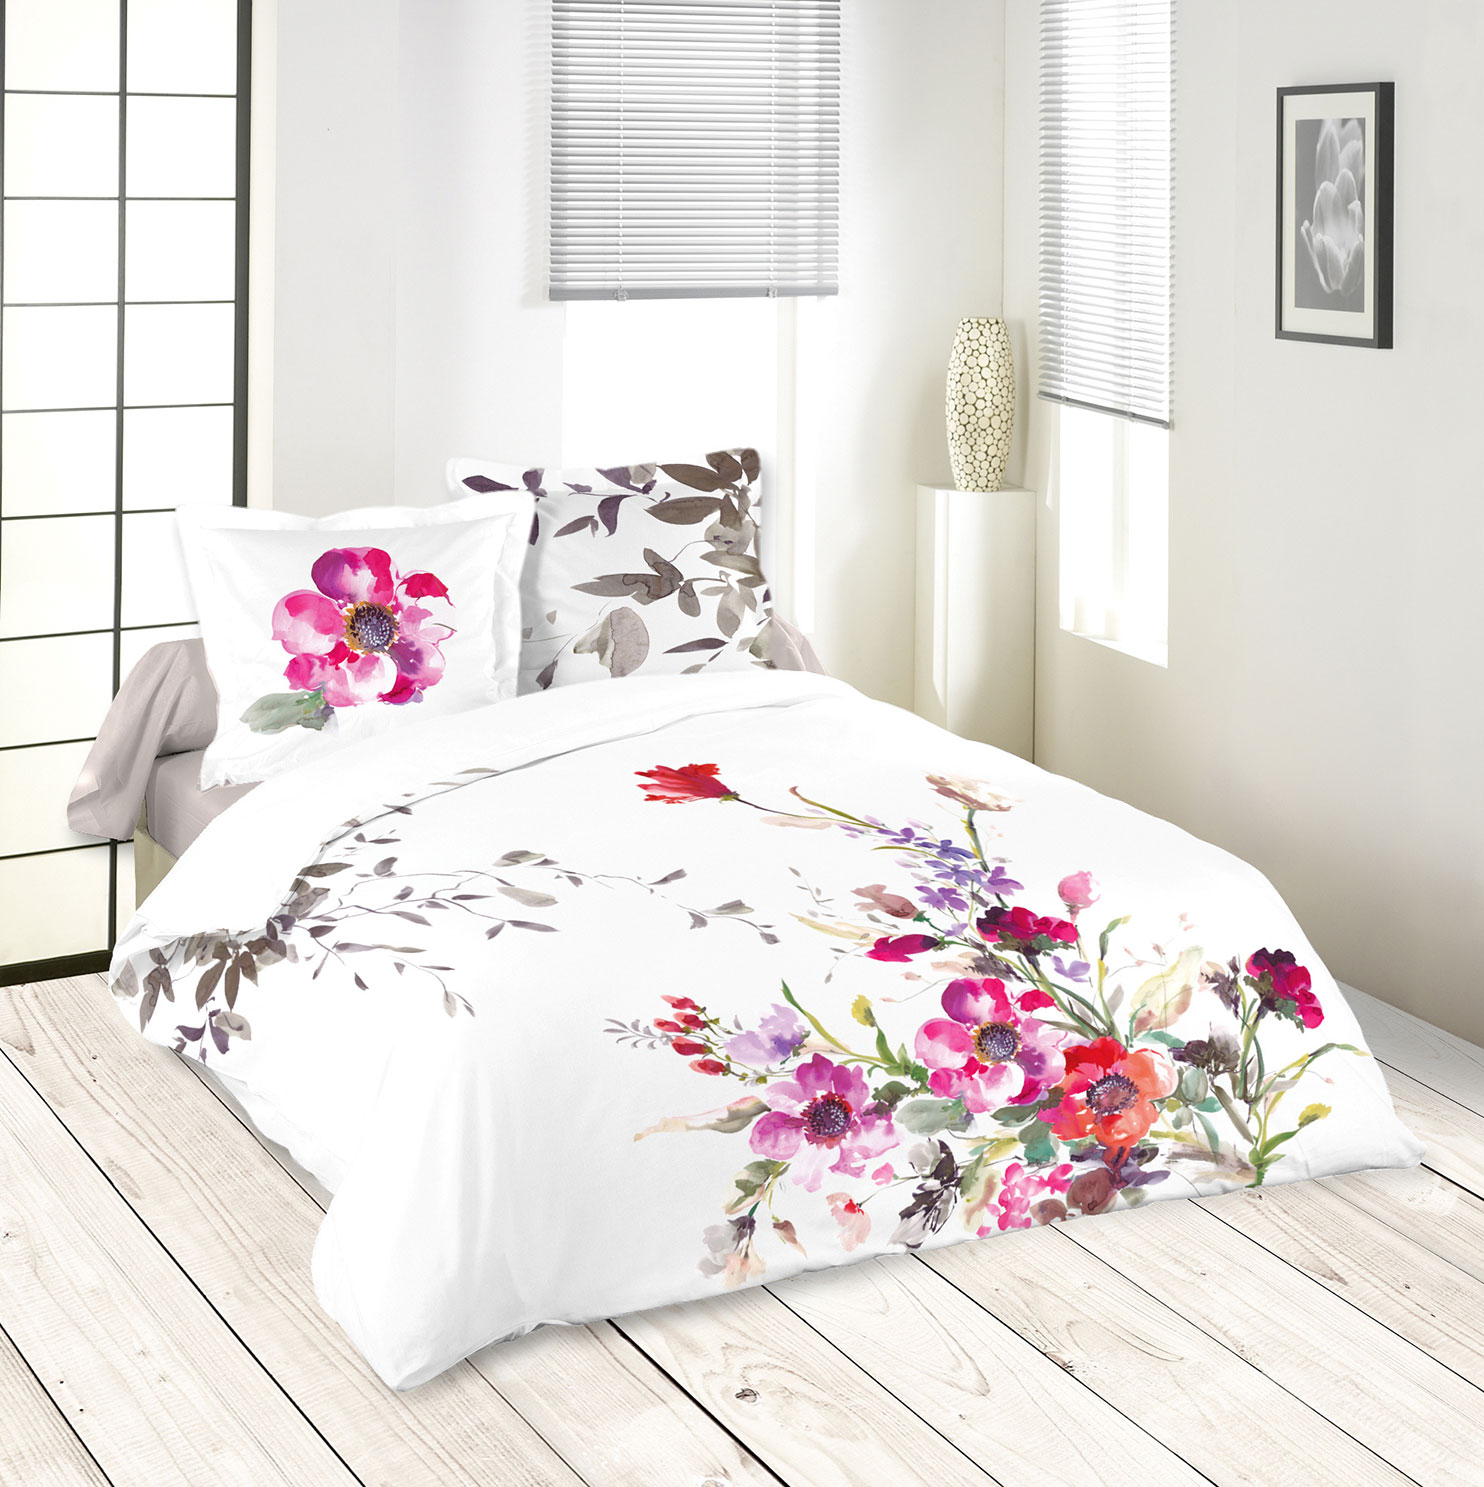 parure de couette bouquet fleuri blanc violet rose et gris homemaison vente en ligne. Black Bedroom Furniture Sets. Home Design Ideas